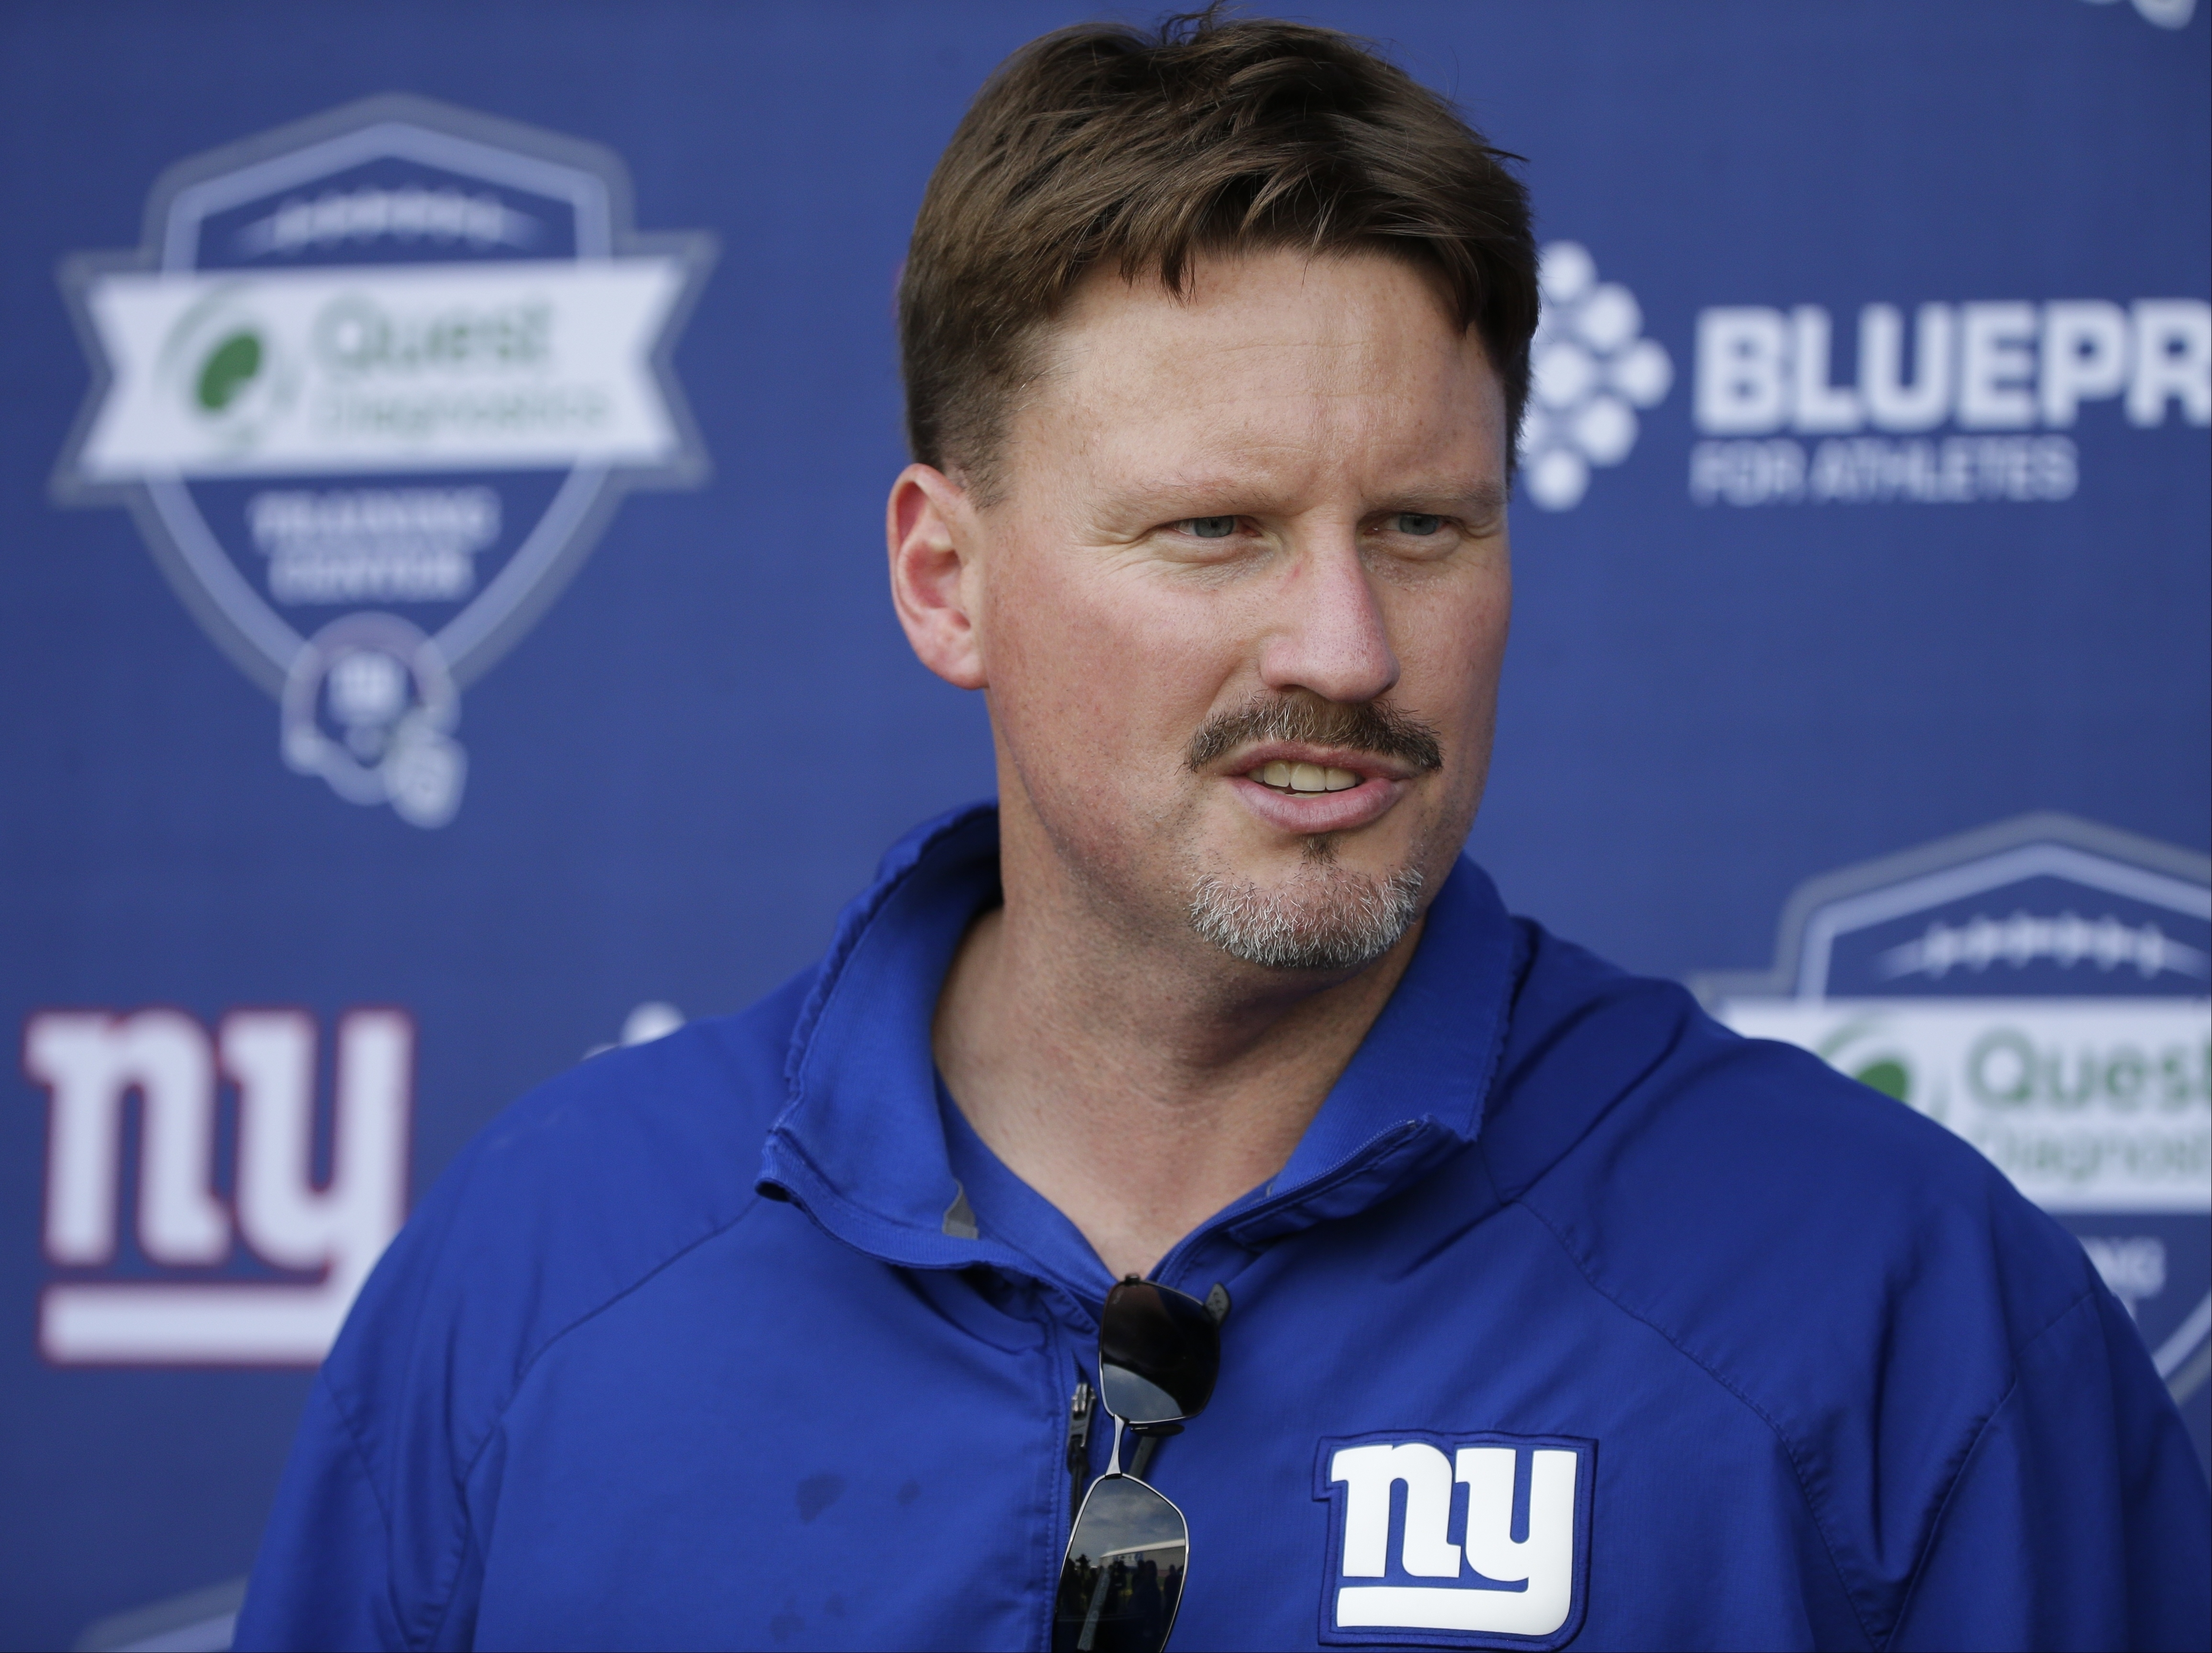 FILE - In this June 1, 2016, file photo, New York Giants head coach Ben McAdoo speaks during a news conference at the New York Giants training facility in East Rutherford, N.J. McAdoo has done and said all the right things since being hired to replace Cou